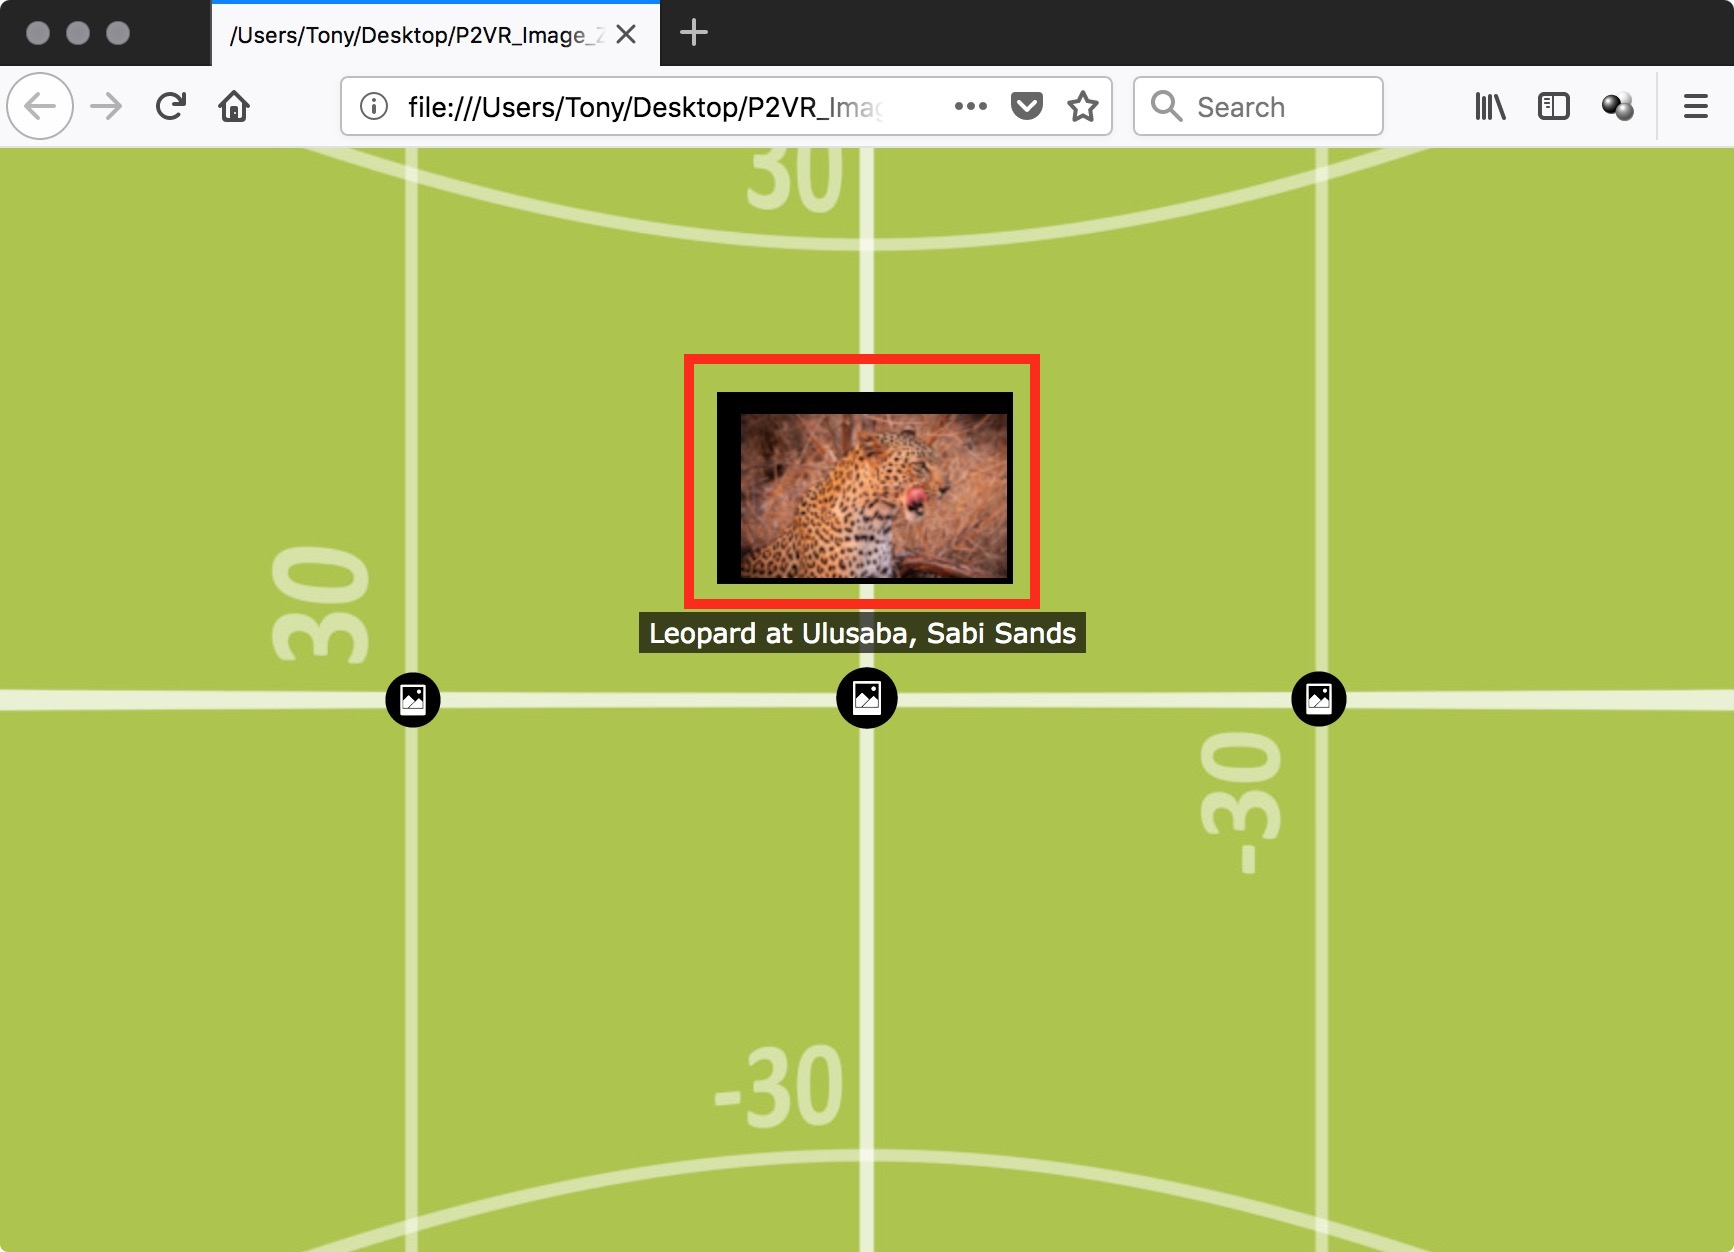 Figure 44: Thumbnail view issue in Firefox